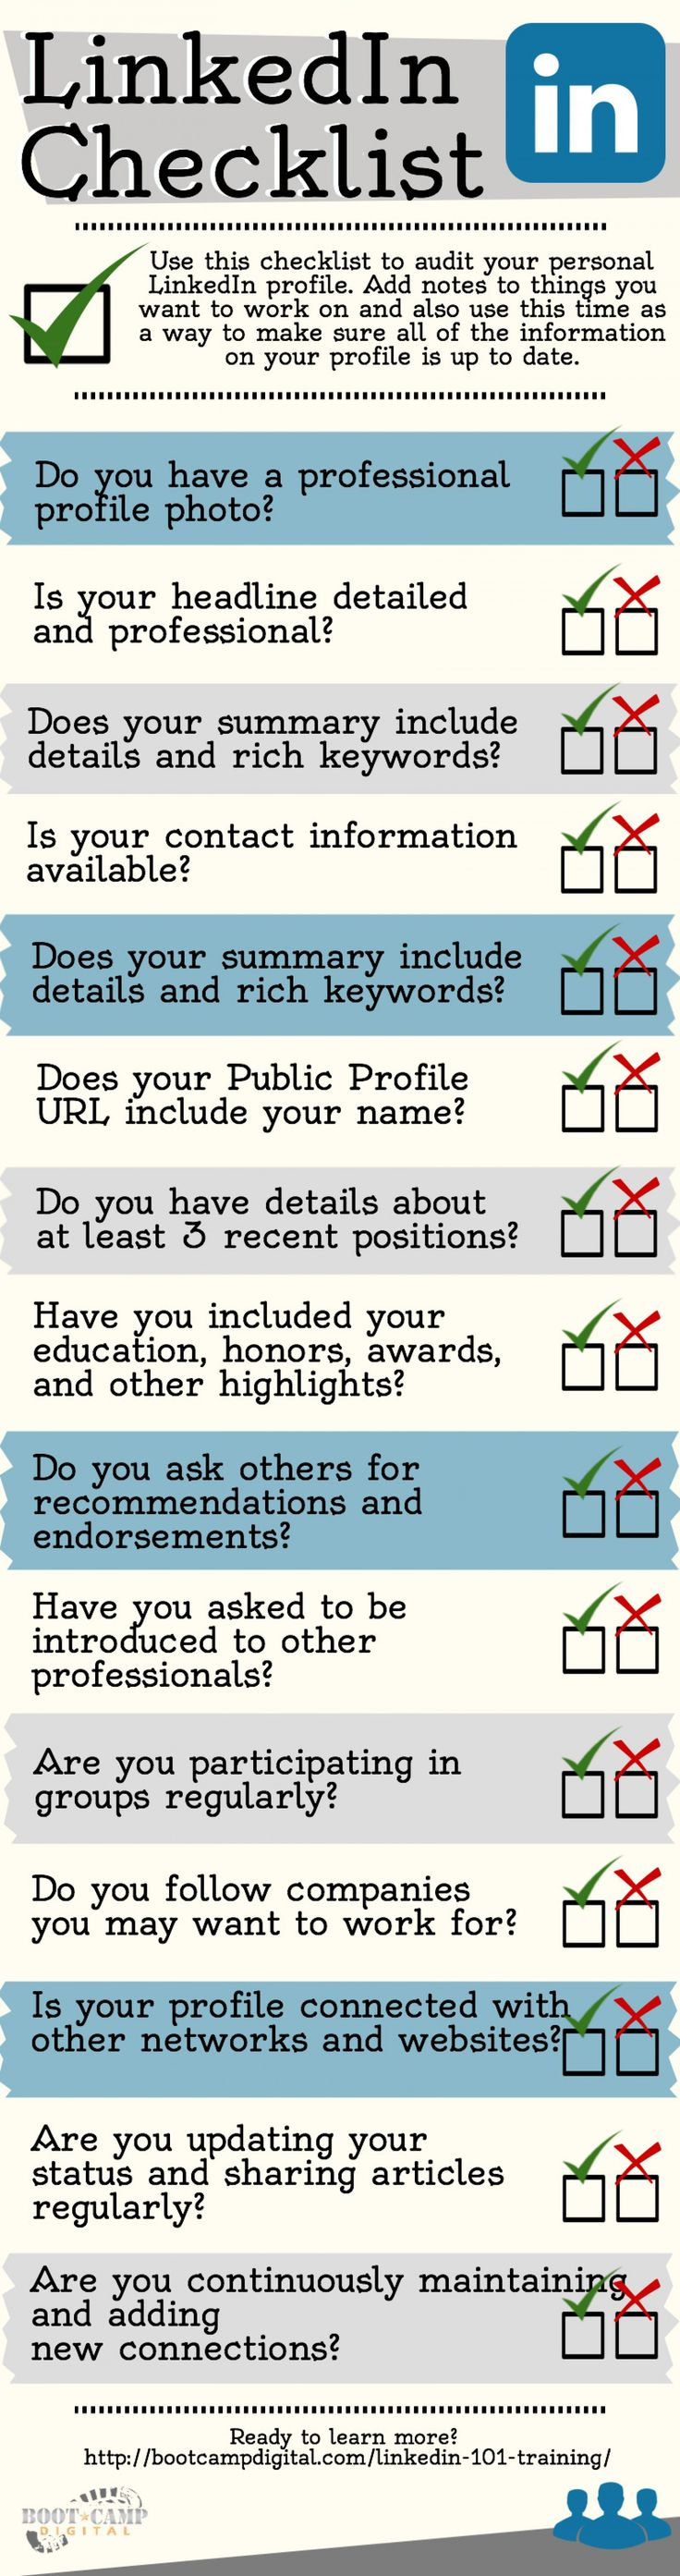 LinkedIn101.com: LinkedIn Checklist [Infographic] - How to Create a Strong LinkedIn Profile -- Check for more LinkedIn tips: http://linkedin101.wordpress.com/.  Something I need to get sorted one of these days.